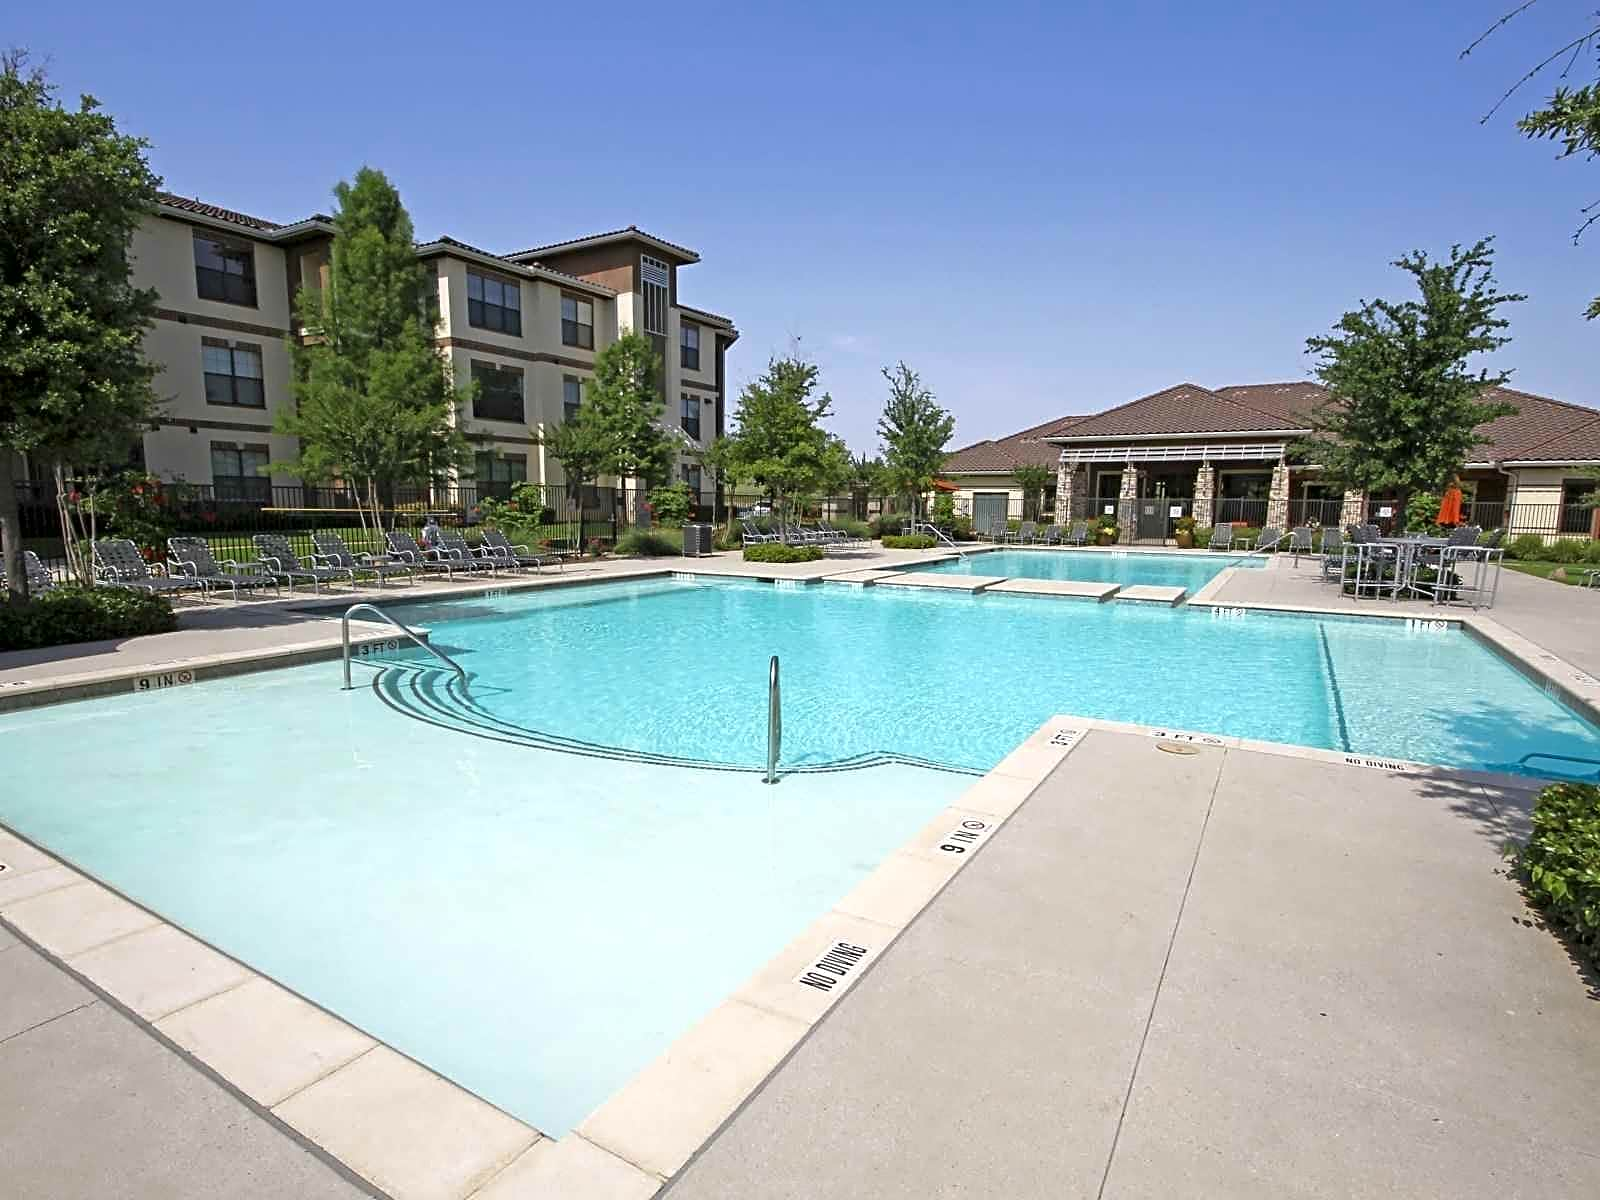 Apartments and houses for rent in 76137 for Garden gate apartments fort worth tx